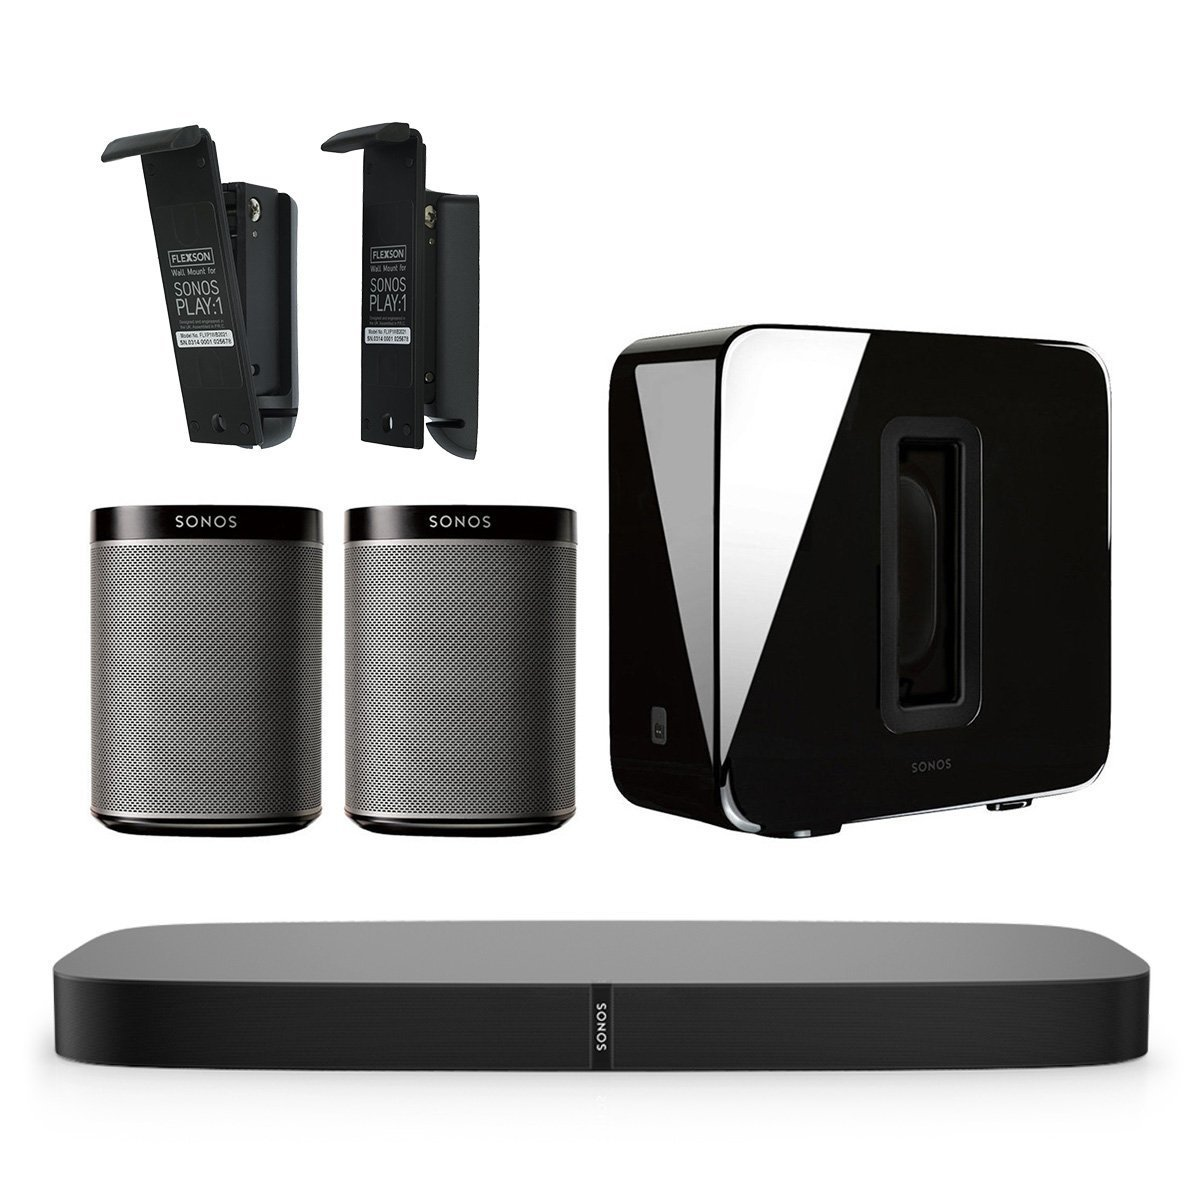 Sonos 5.1 PLAYBASE Home Theater Digital Music System with Flexson Wall Mounts for PLAY:1 (Black) by Sonos